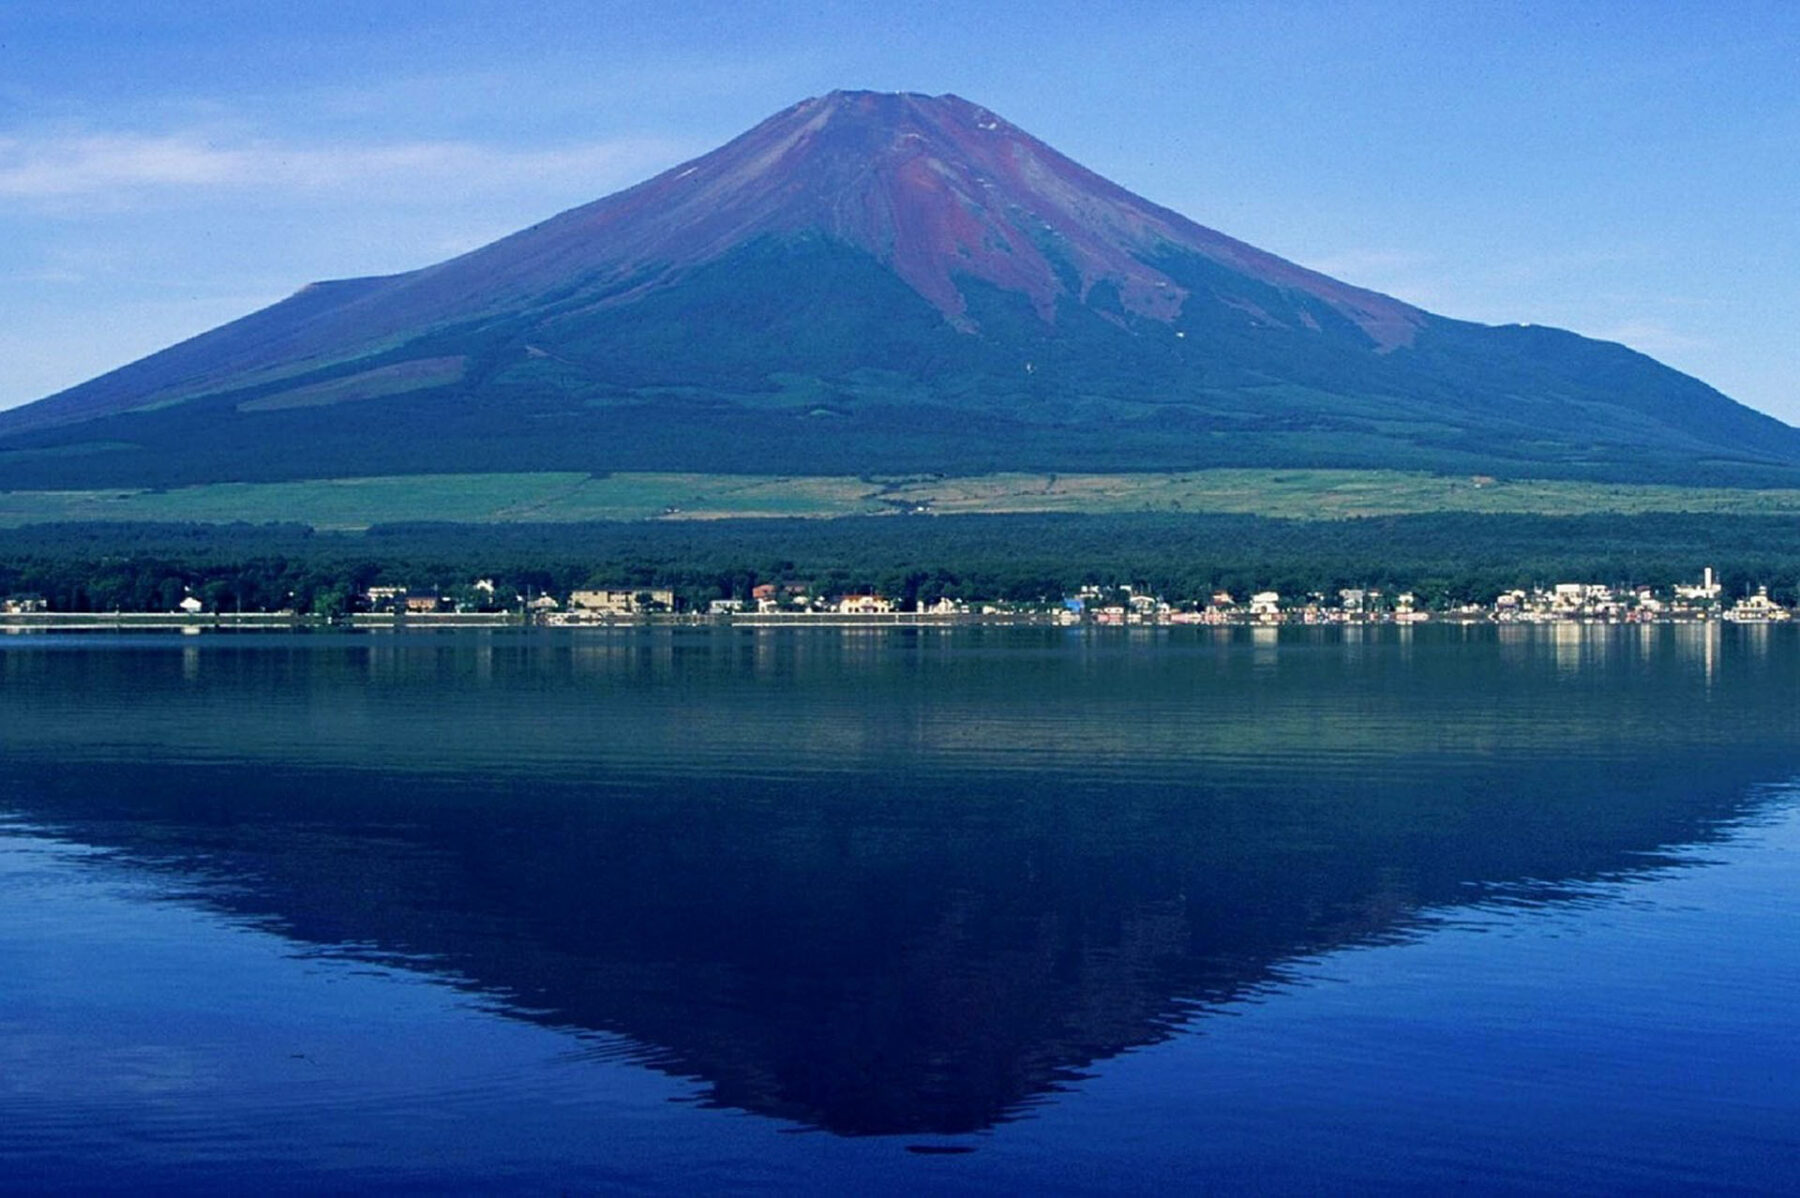 The Iconic Mount Fuji - Japan - The Travel Agent, Inc.